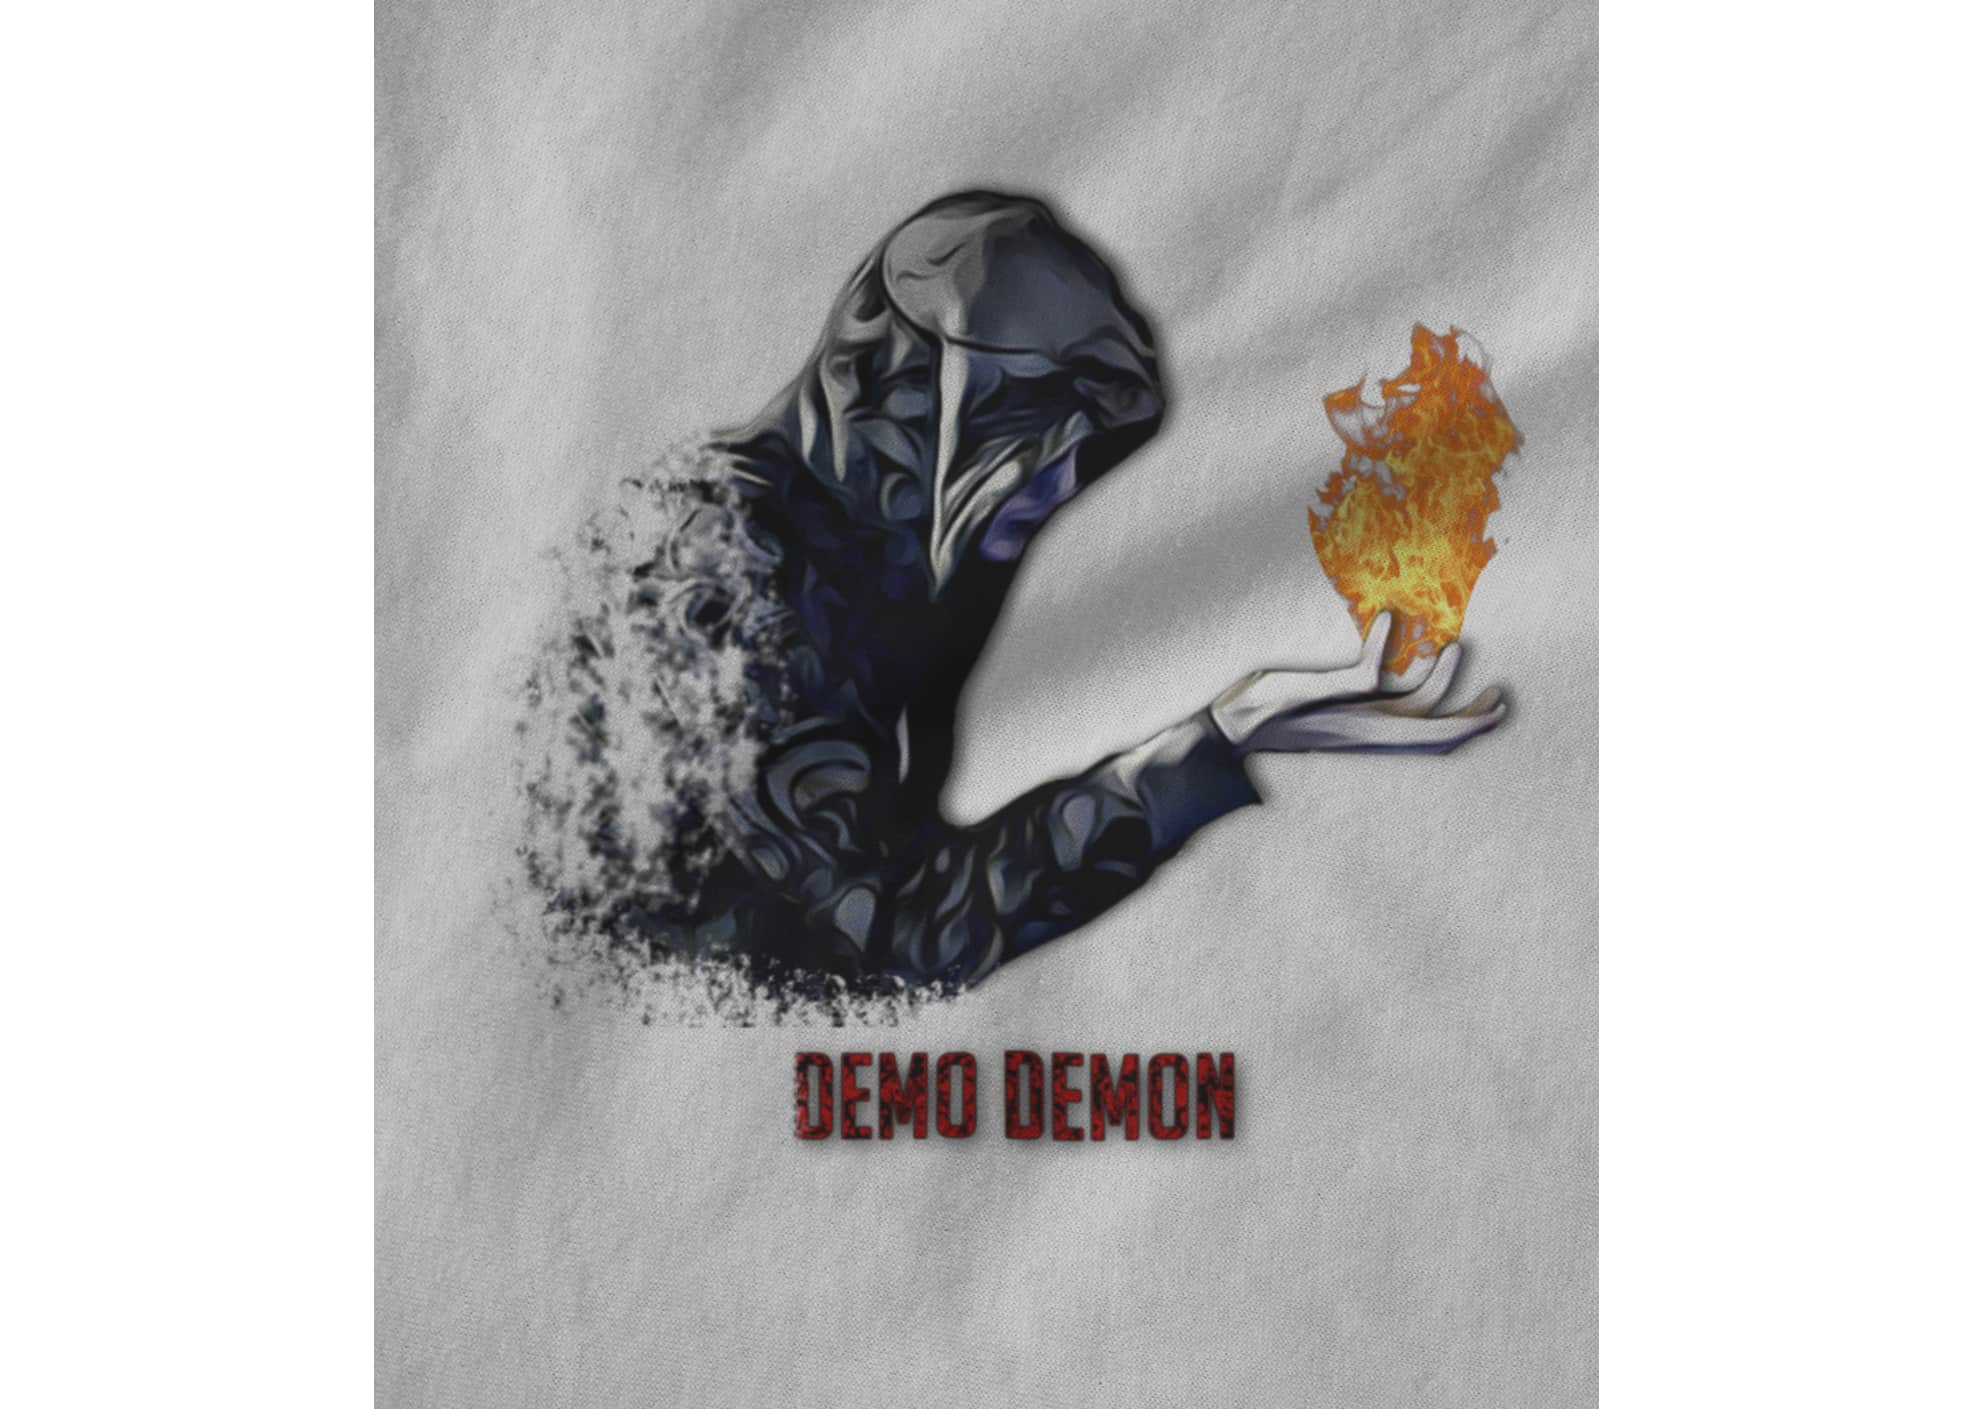 Demo demon fire keeper 1522900732